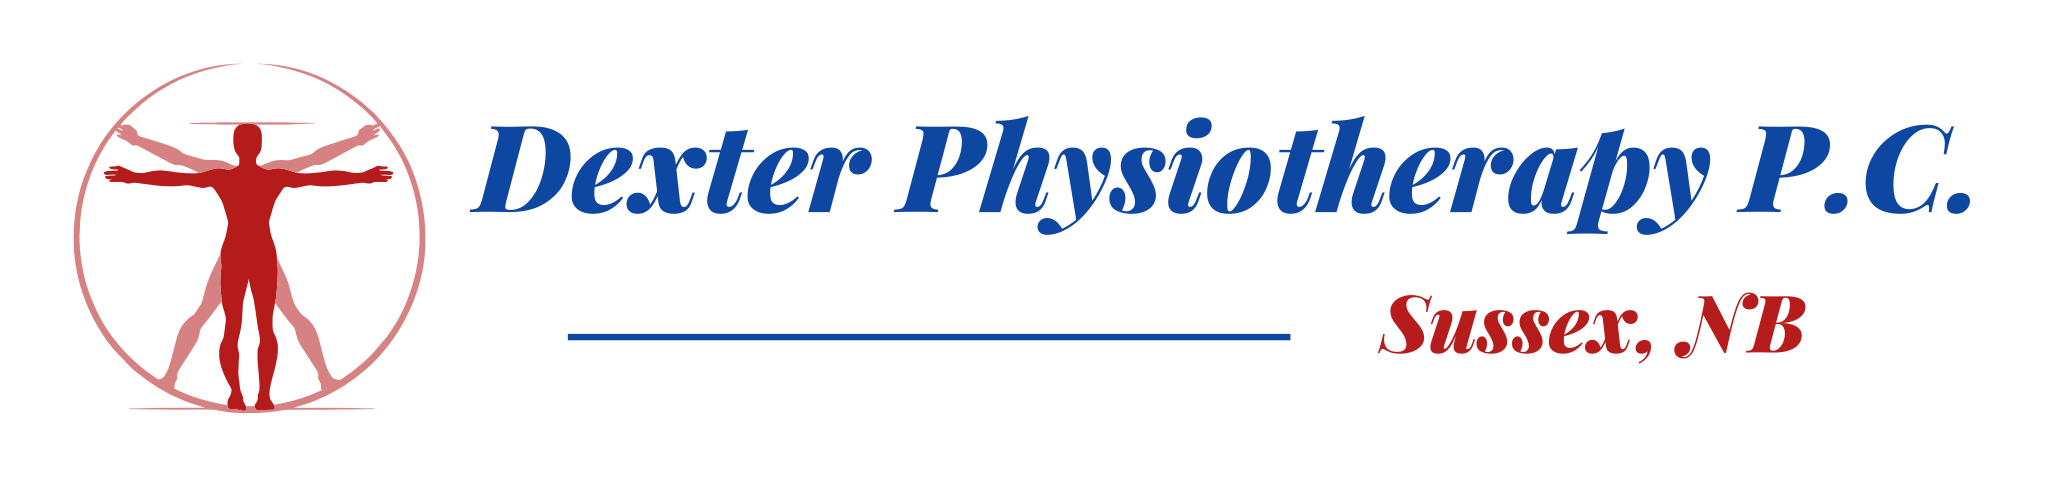 Dexter Physiotherapy